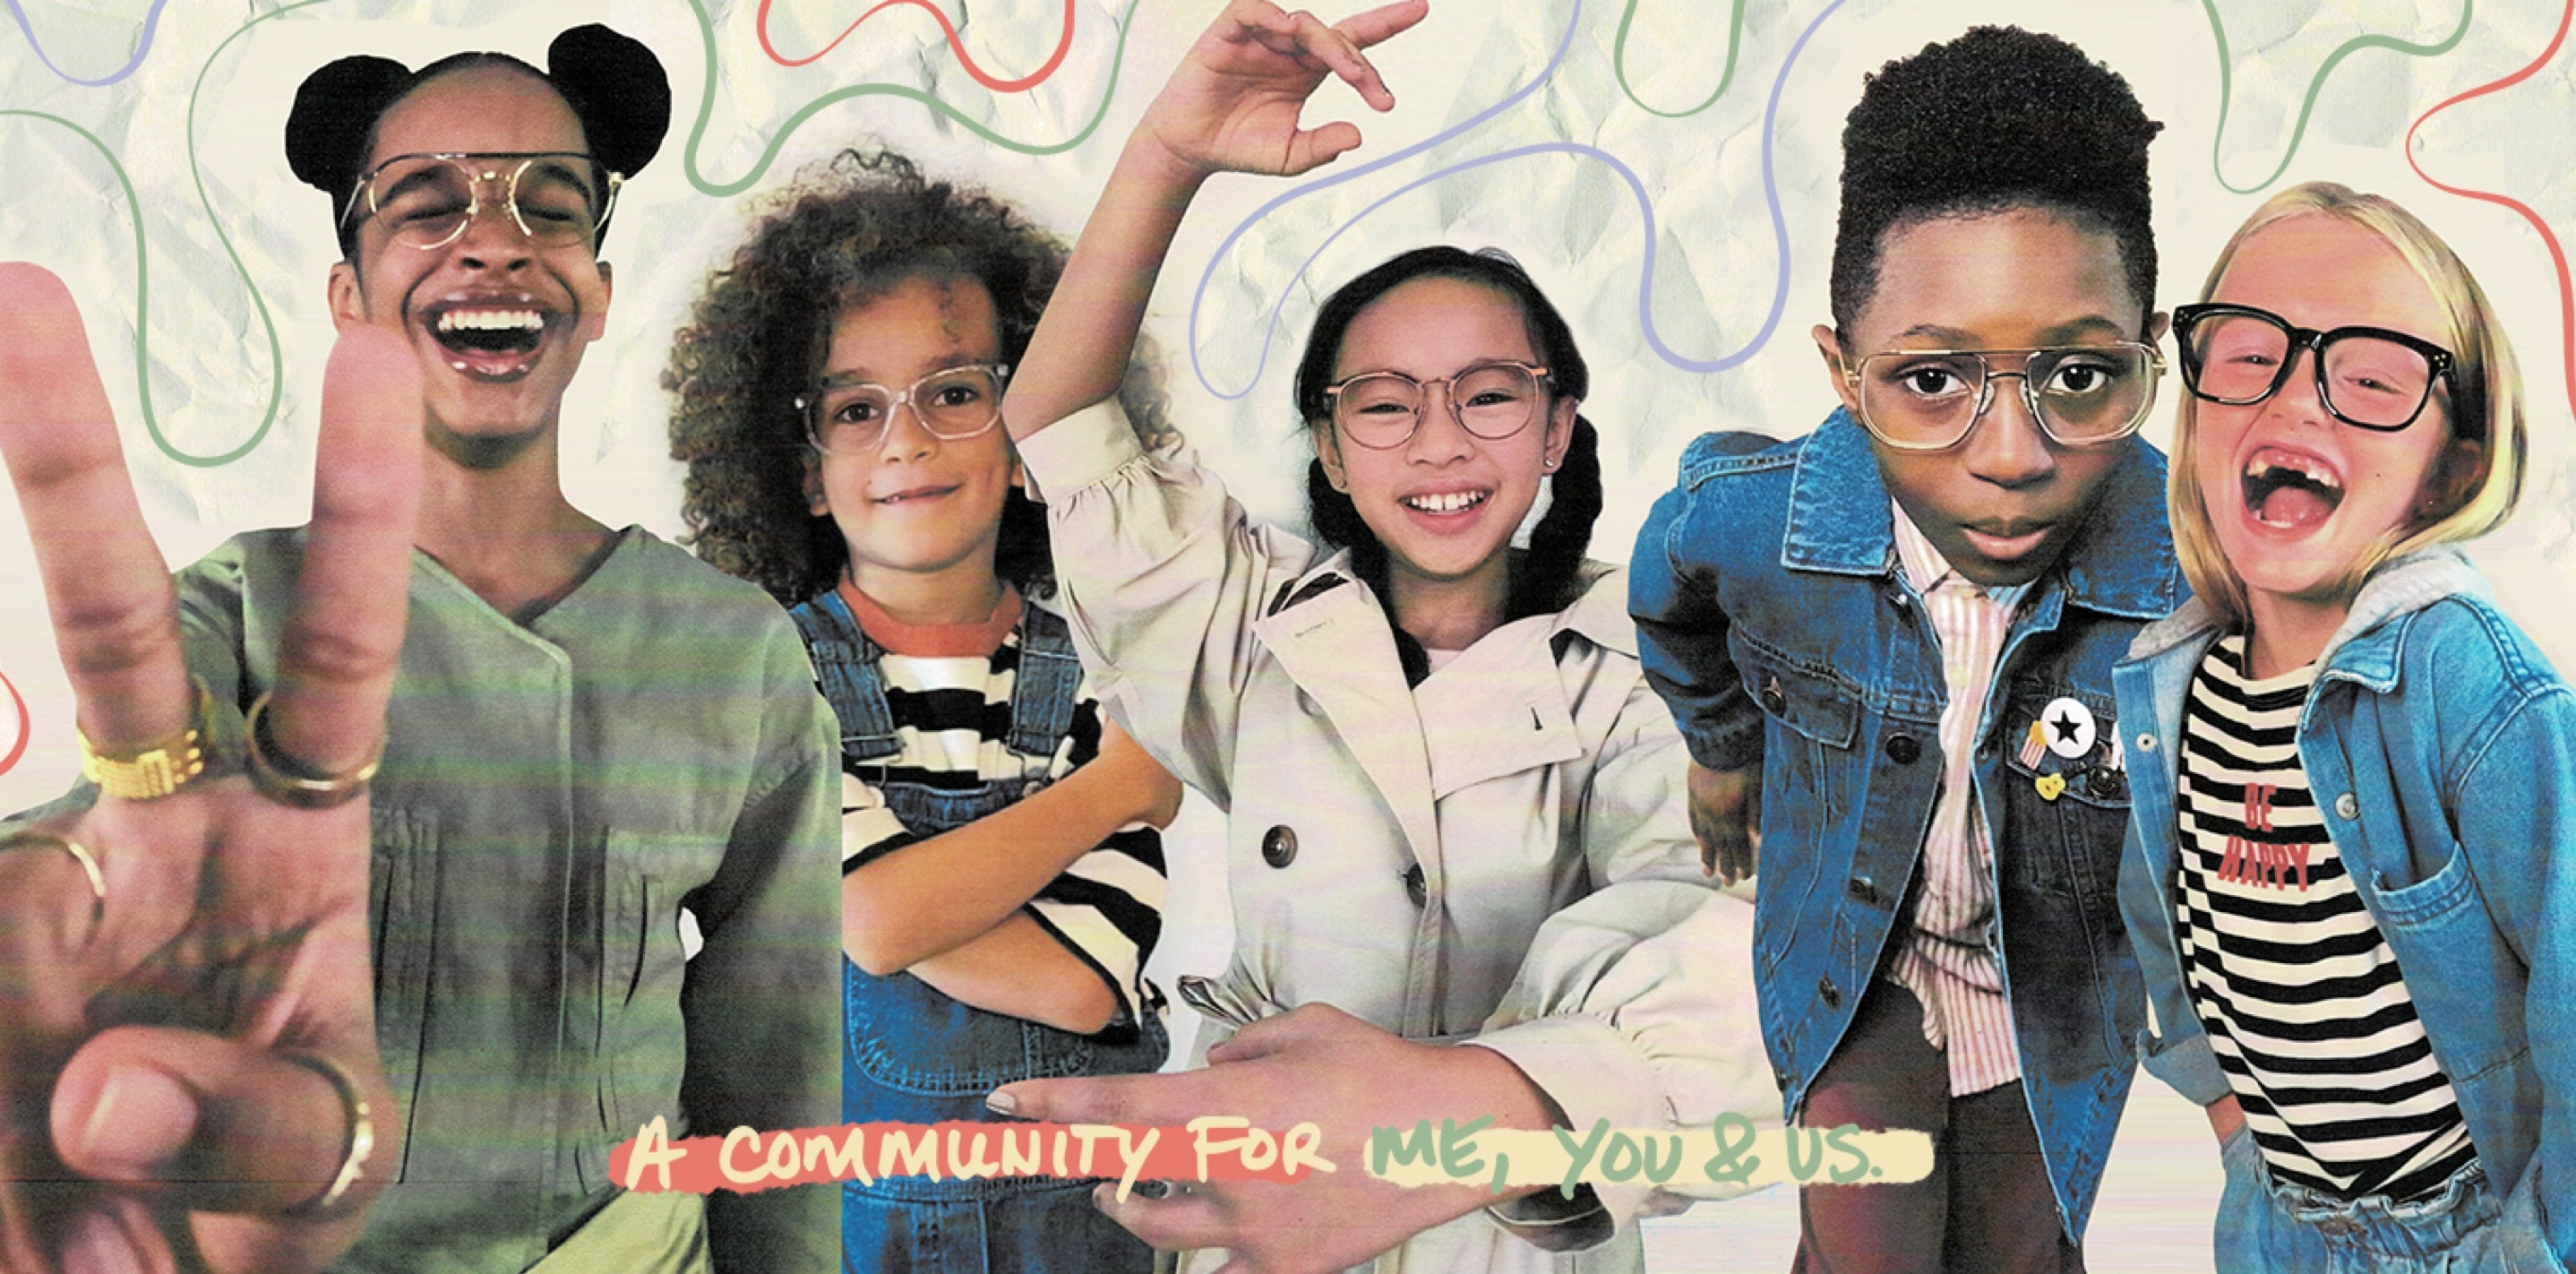 Your world, your vision. Image of 5 kids with cool glasses, against a black and white background, with colorful squiggly lines. With a scrolling banner that says I am powerful, I am kind, I am grateful, I am positive, I am loving.